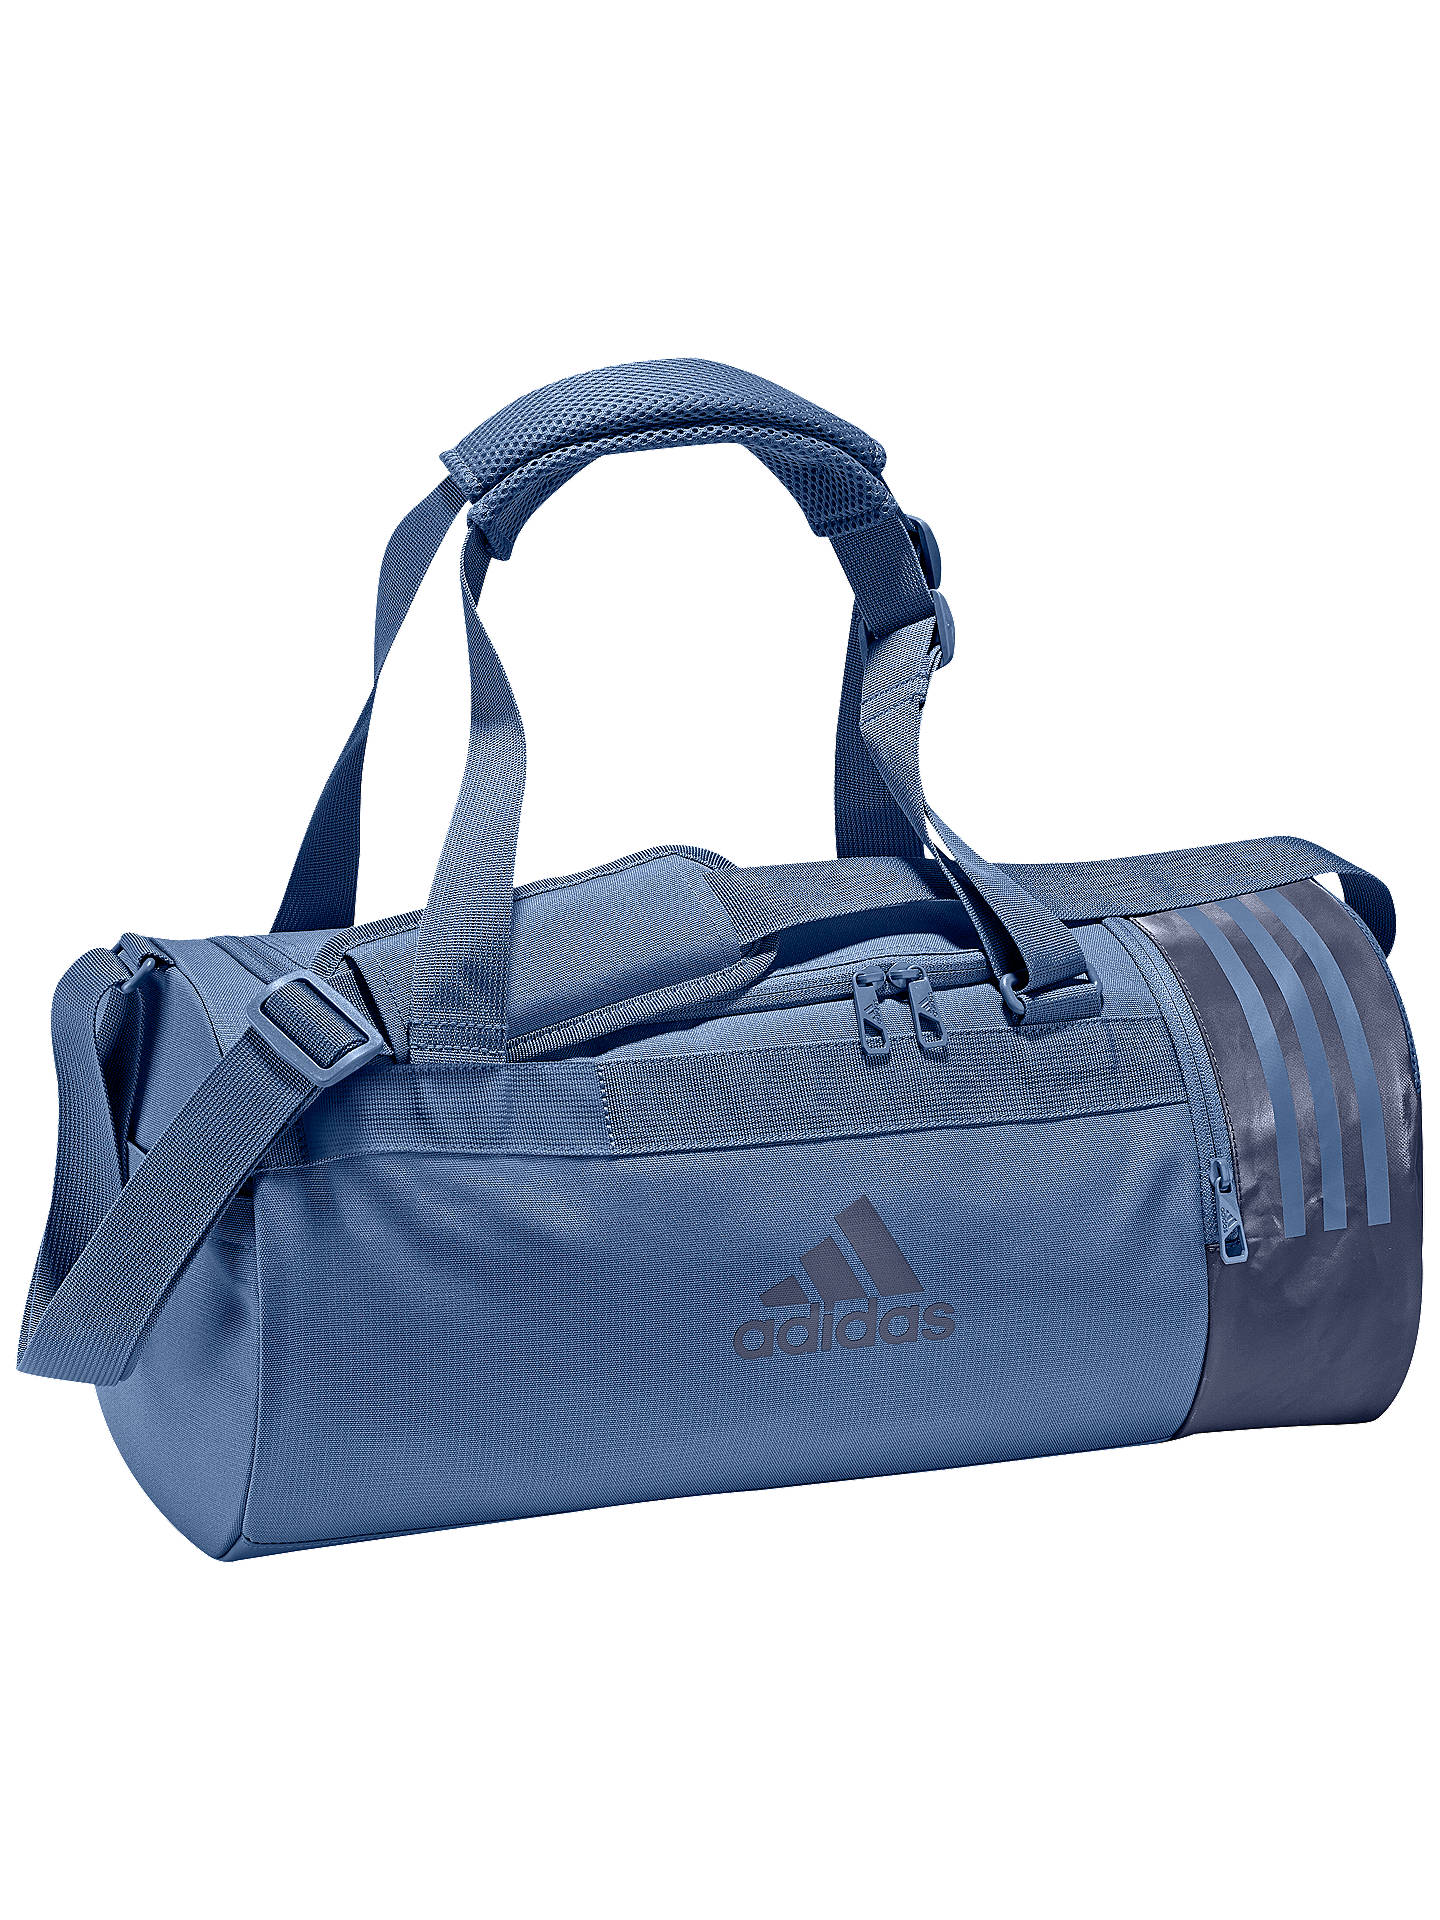 Buyadidas Training Core Bag, Small, Trace Royal Online at johnlewis.com 1711e67b43